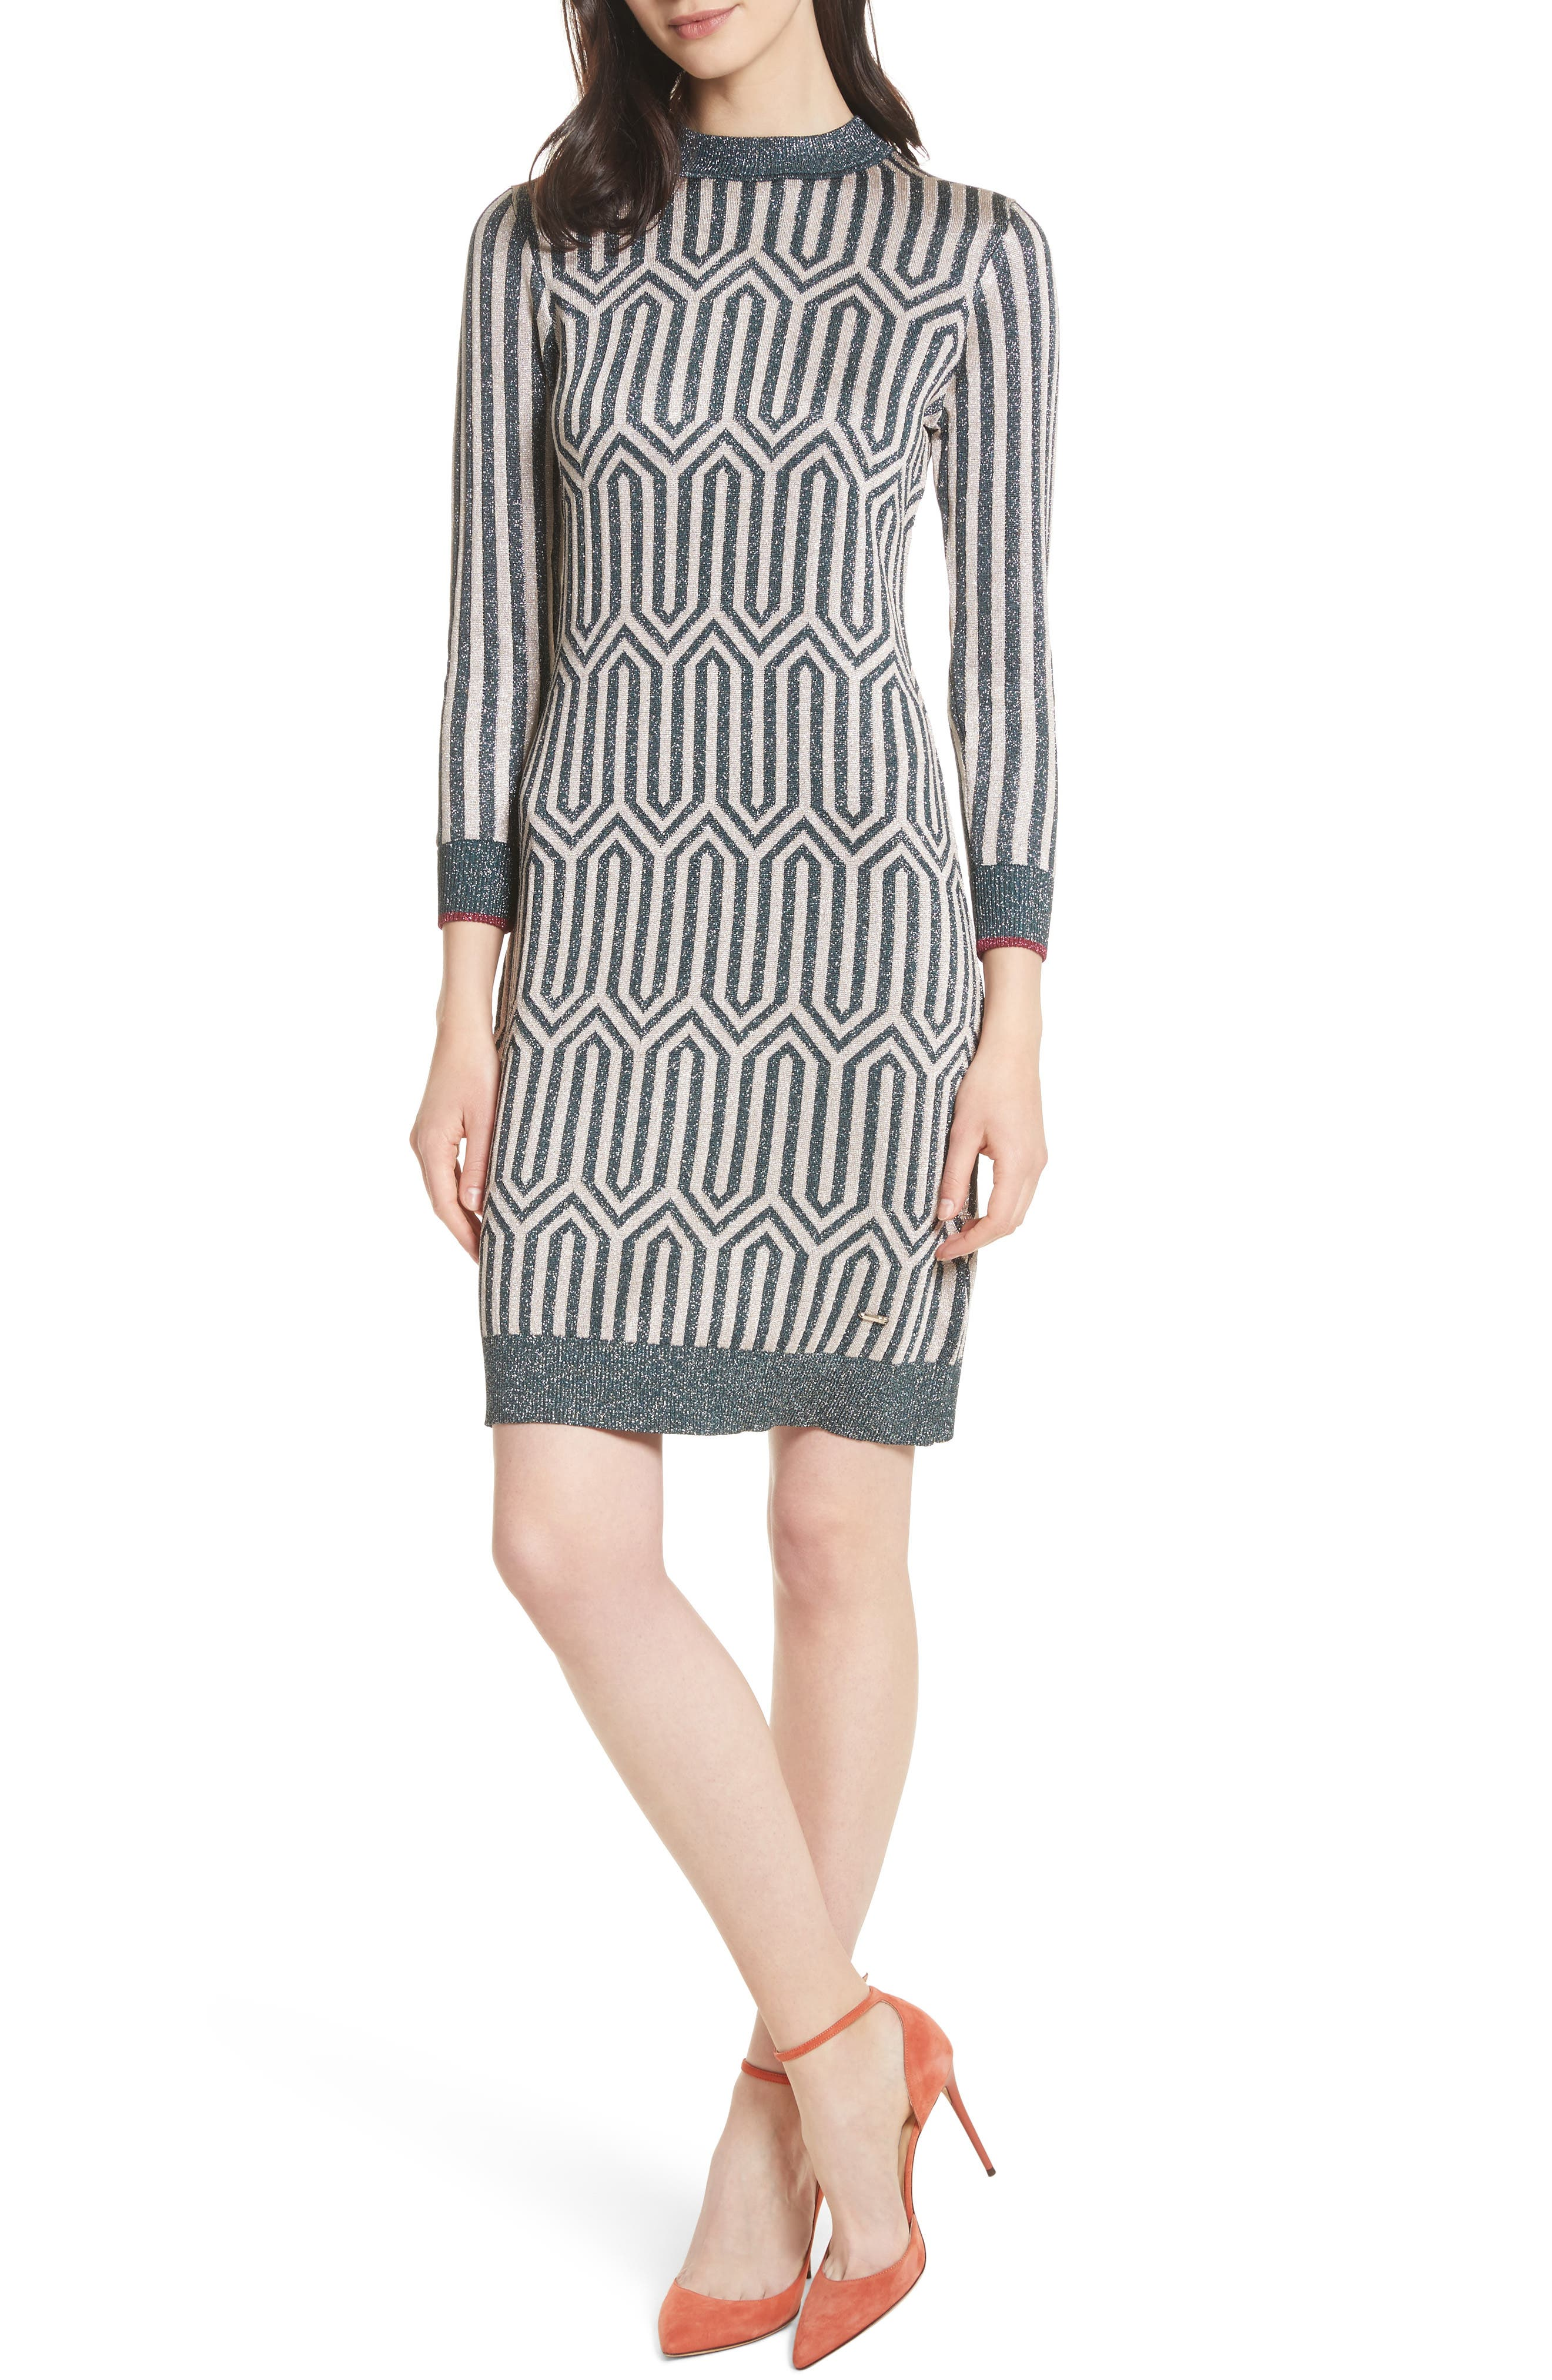 Main Image - Ted Baker London Metallic Knit Dress